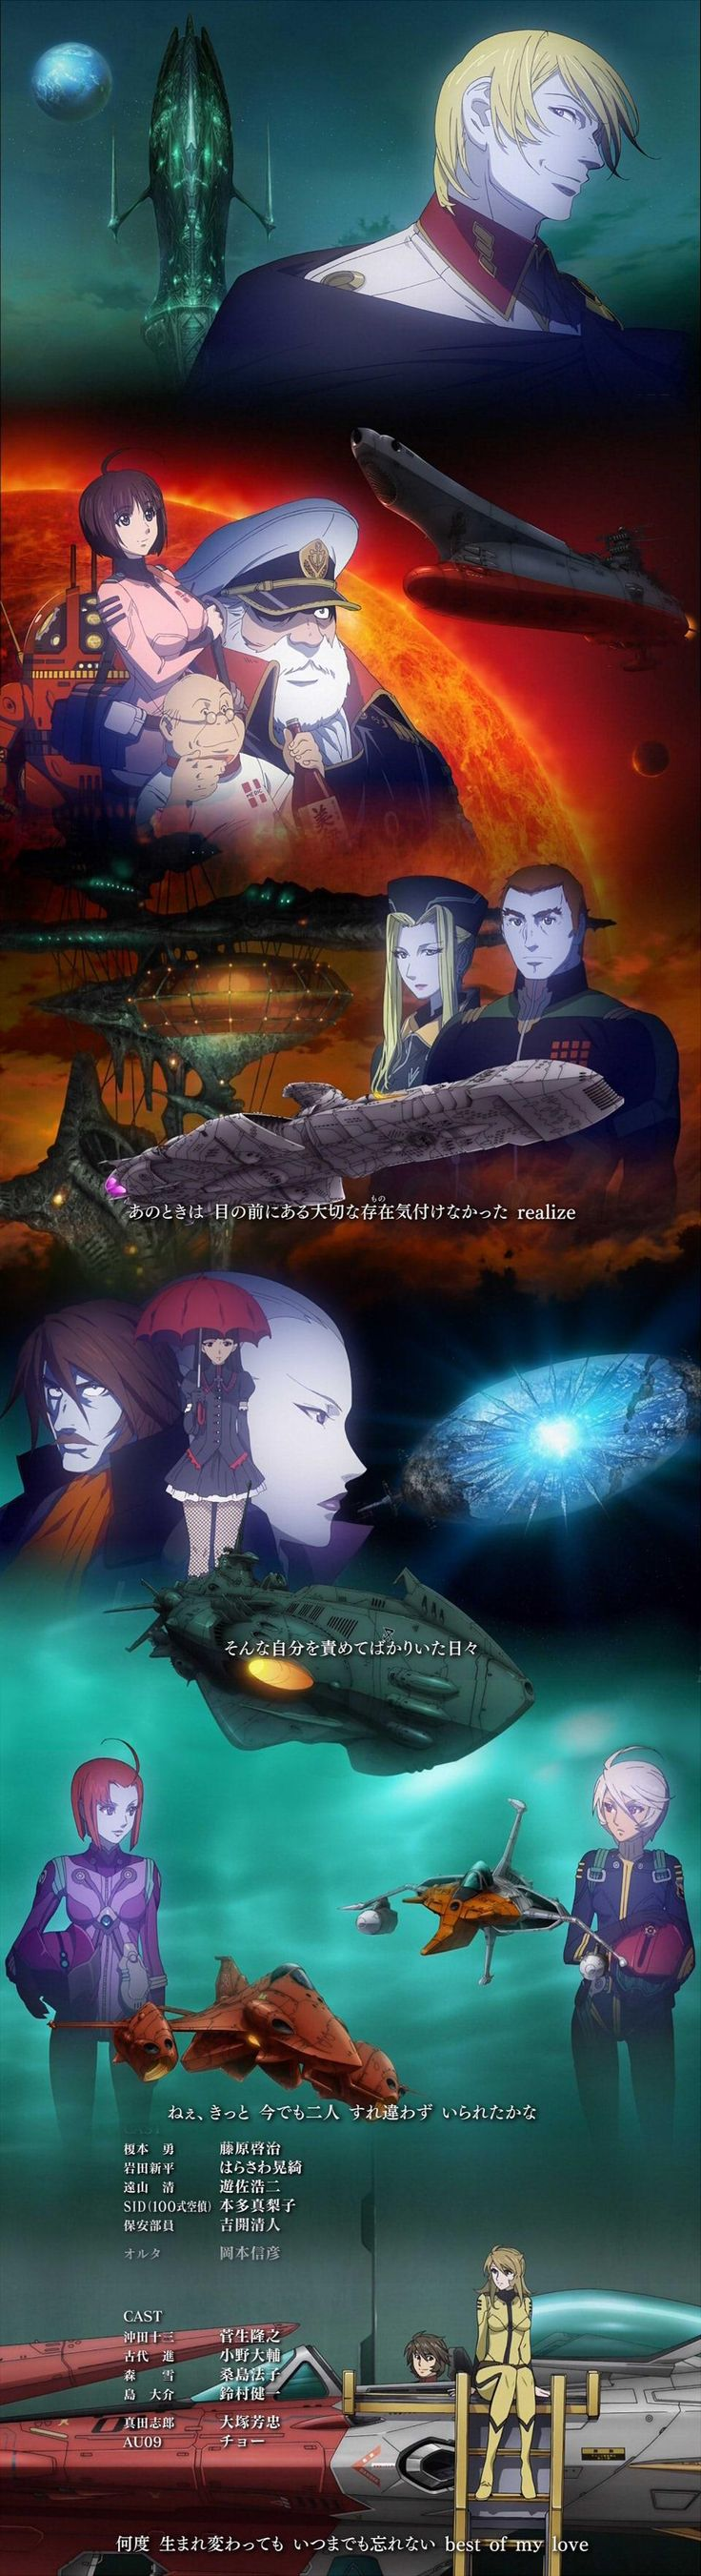 Space Battleship Yamato 2199 (anime series) *Waiting for the sequel to be released.